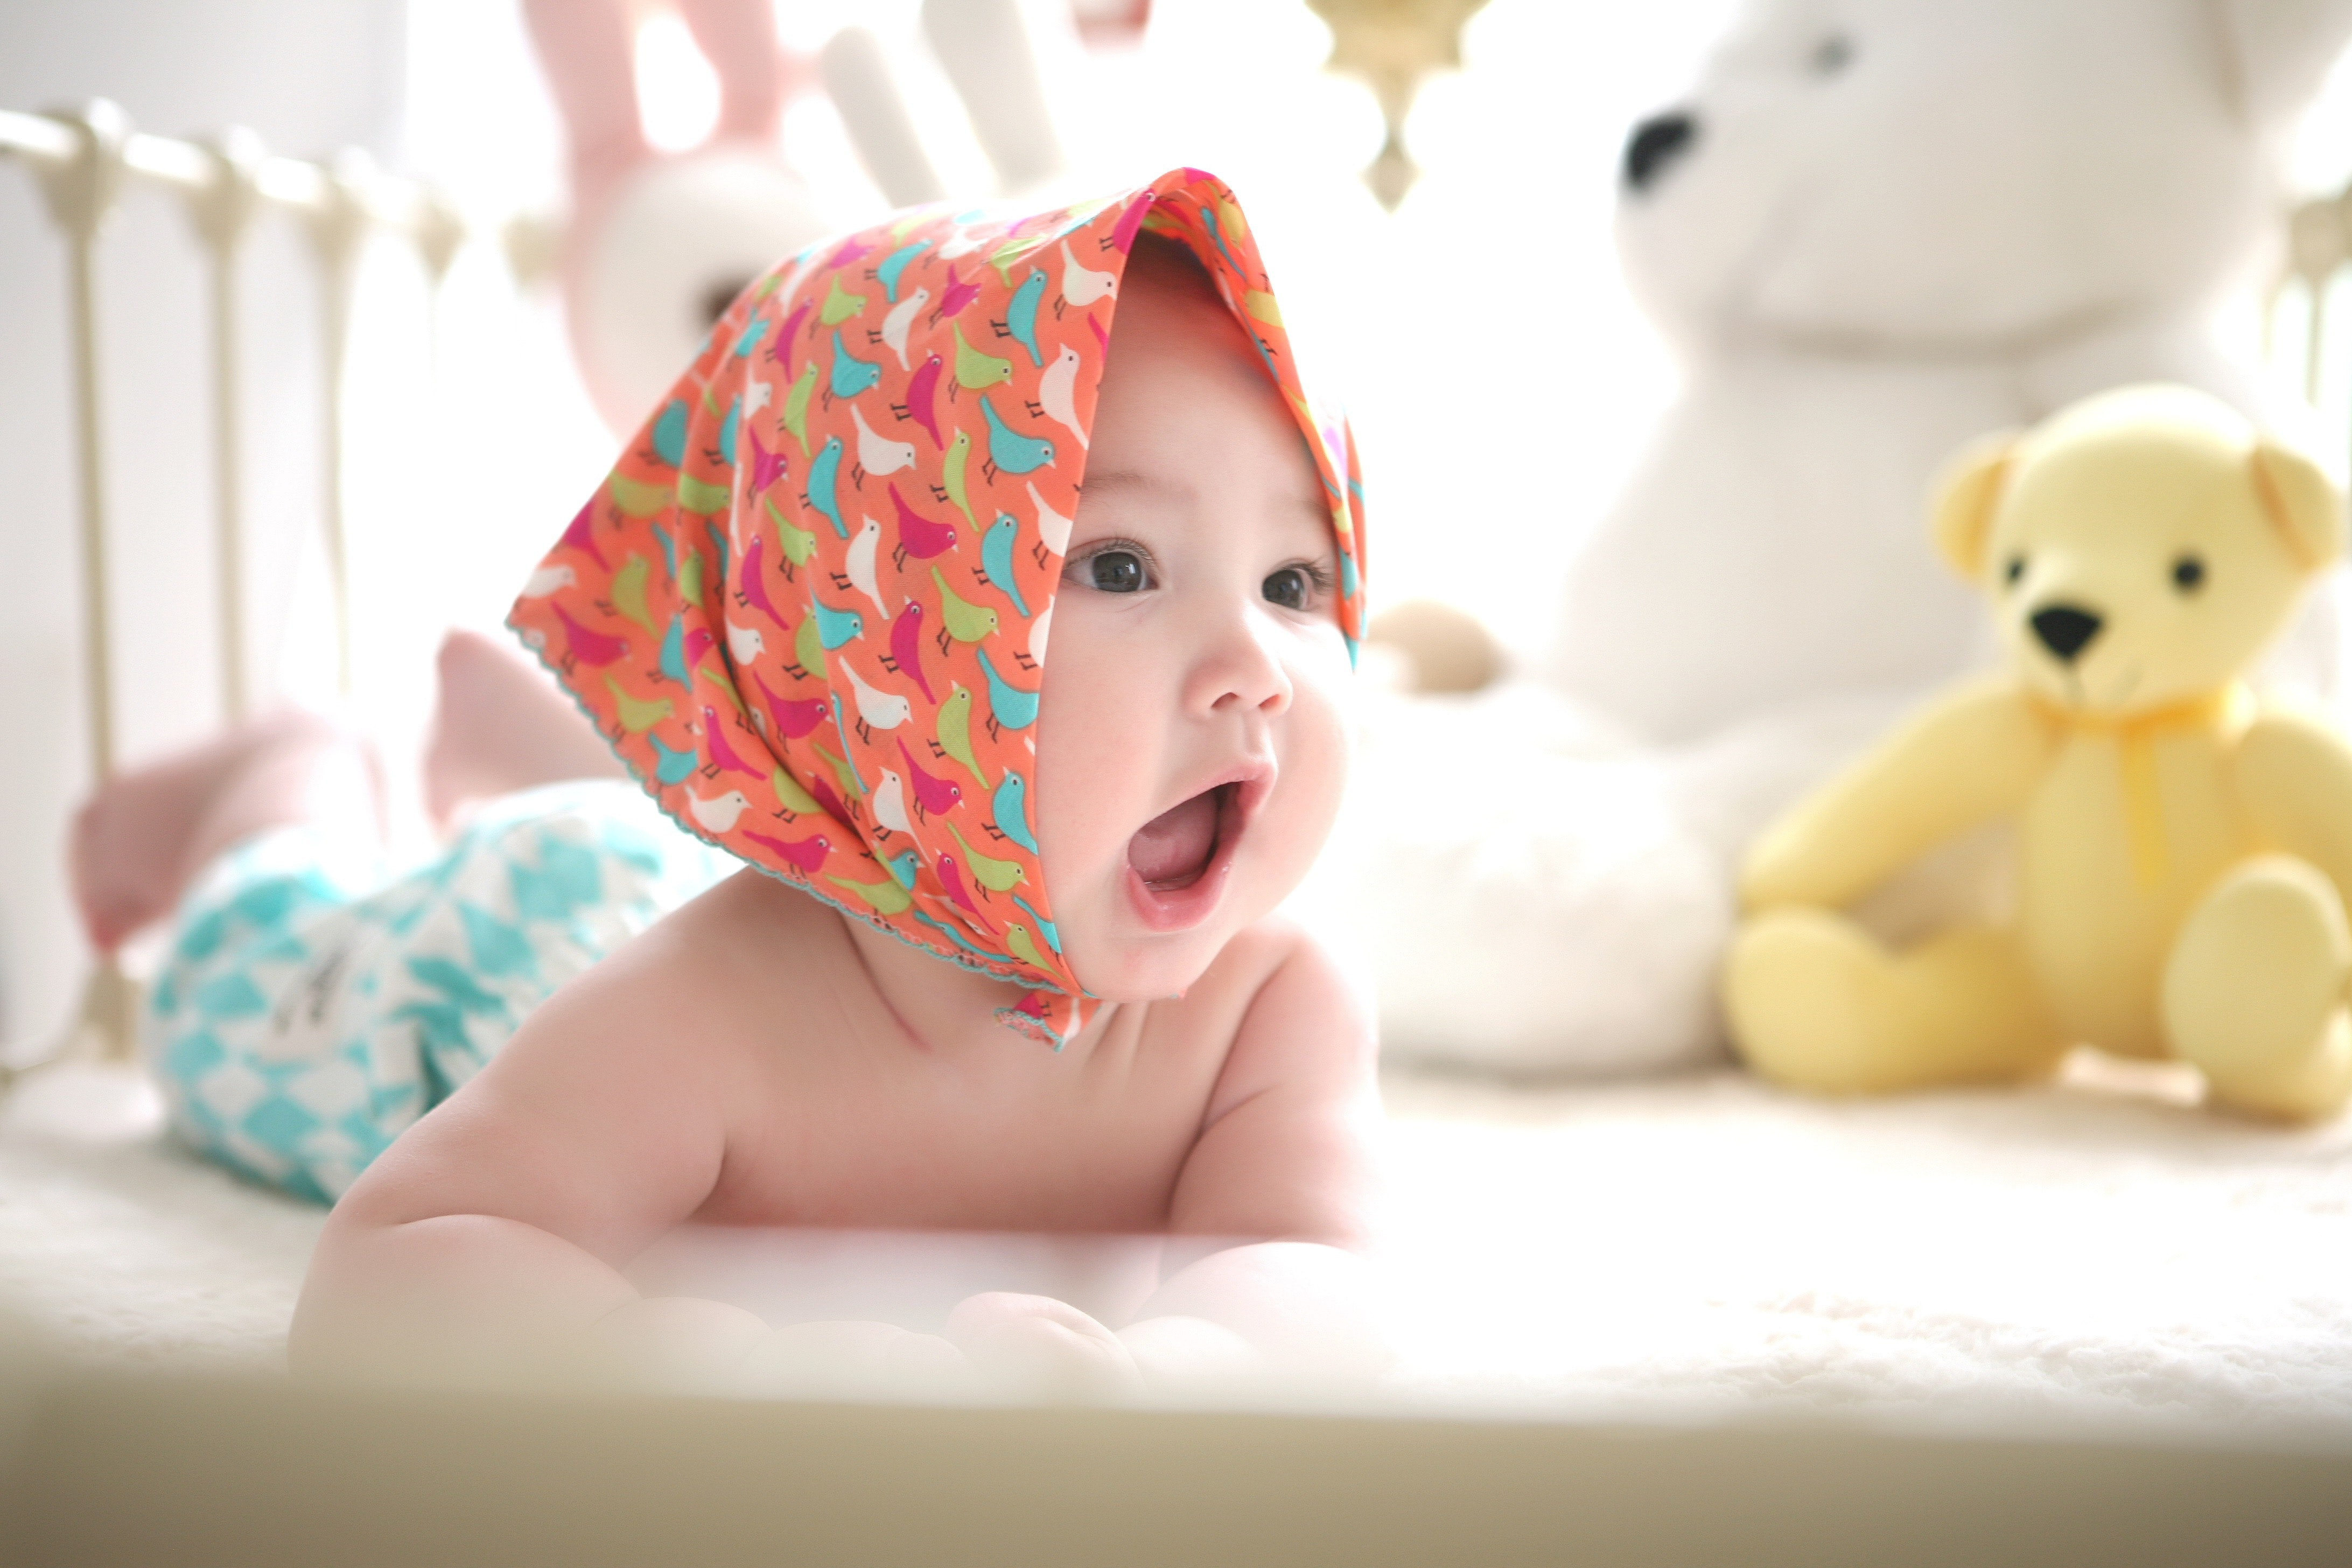 177 heartwarming baby photos pexels free stock photos browse through our collection of 177 heartwarming baby photos all our images are of high quality so go ahead and use them for your blog or article for voltagebd Gallery